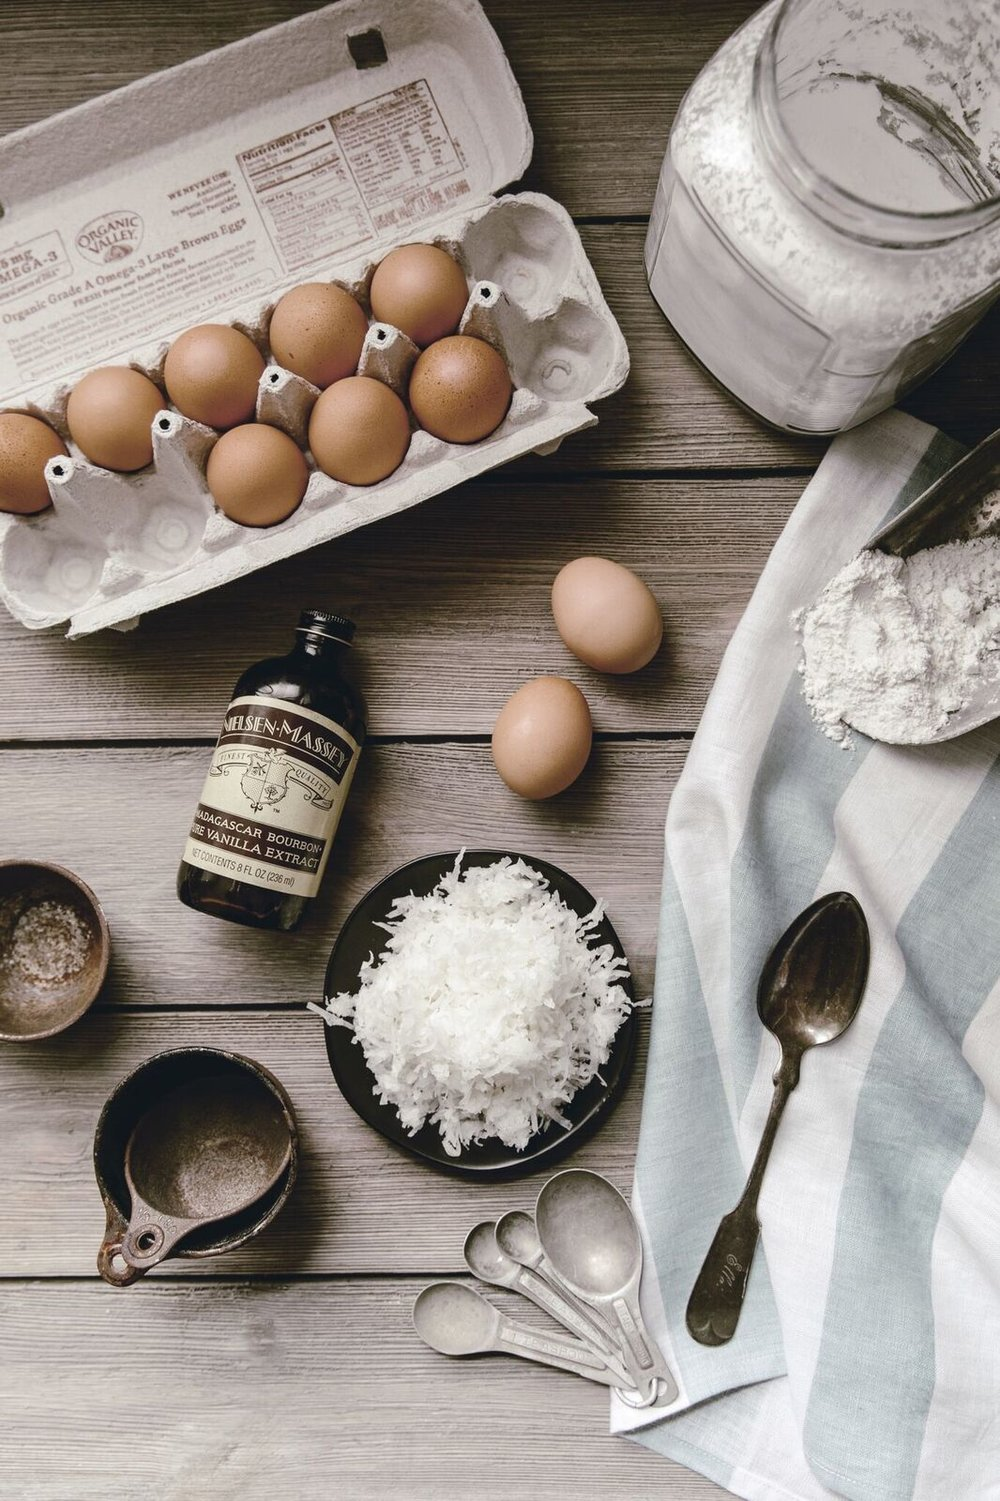 Coconut Cake Ingredients by heirloomed